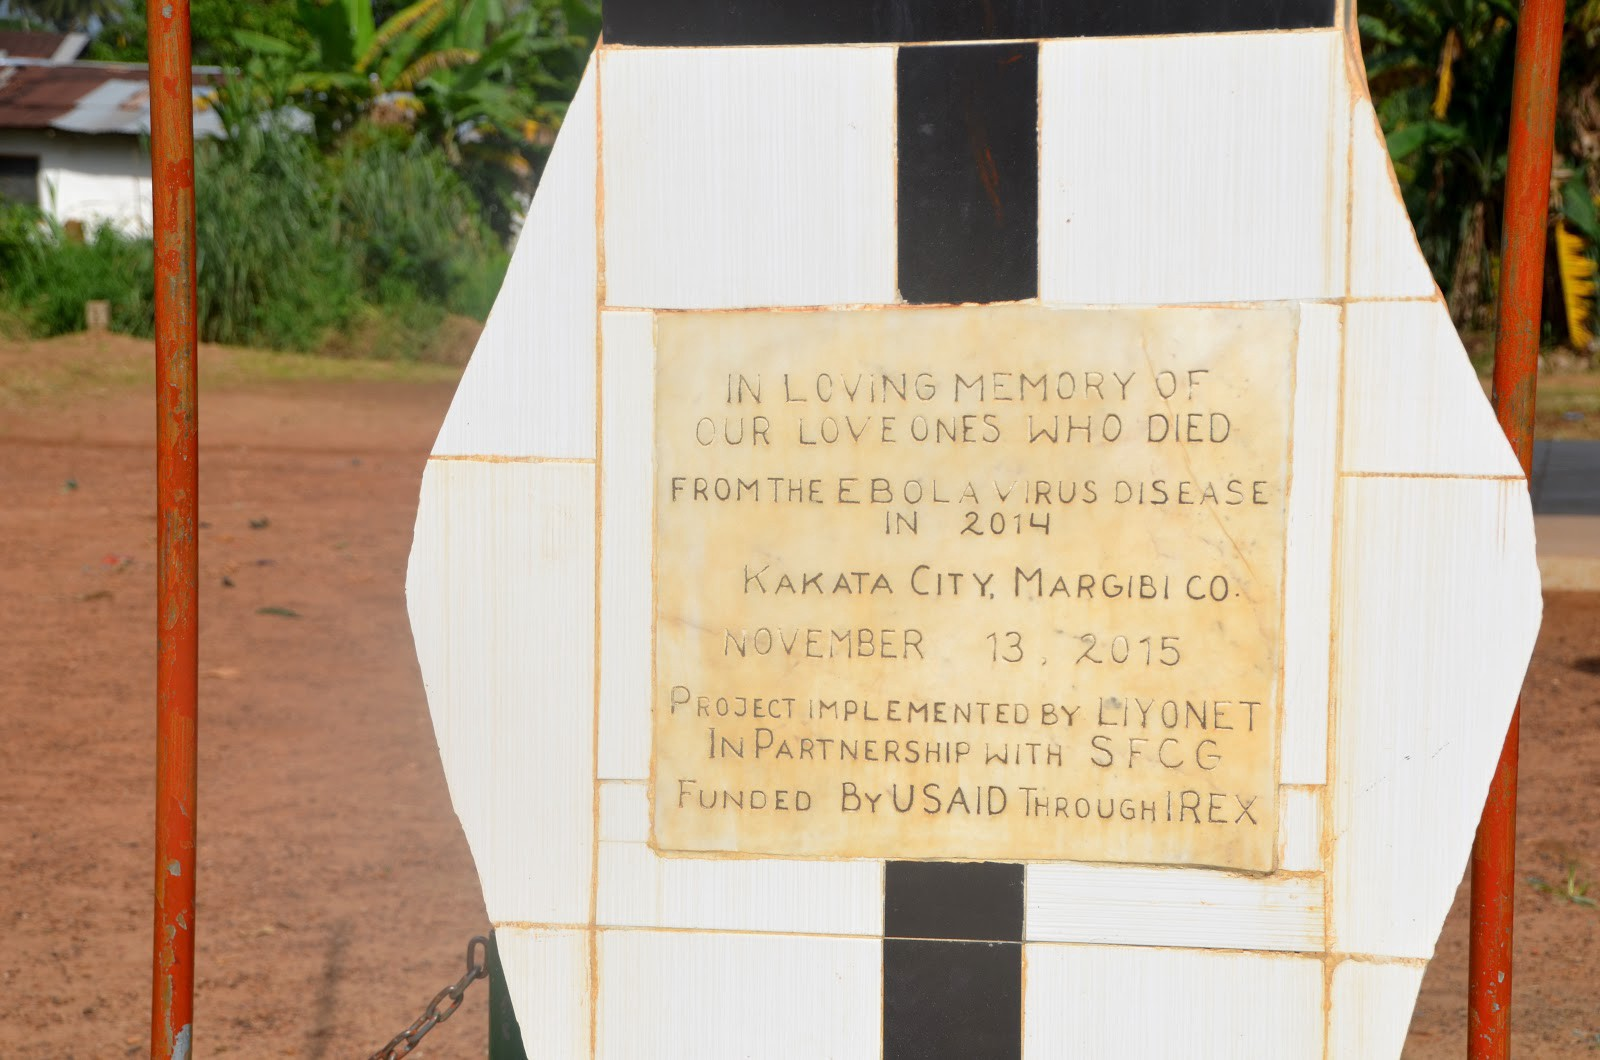 A memorial plaque honoring those who died from Ebola in 2014 in Kakata City, Margibi County, Liberia. / Jessica Benton Cooney, USAID